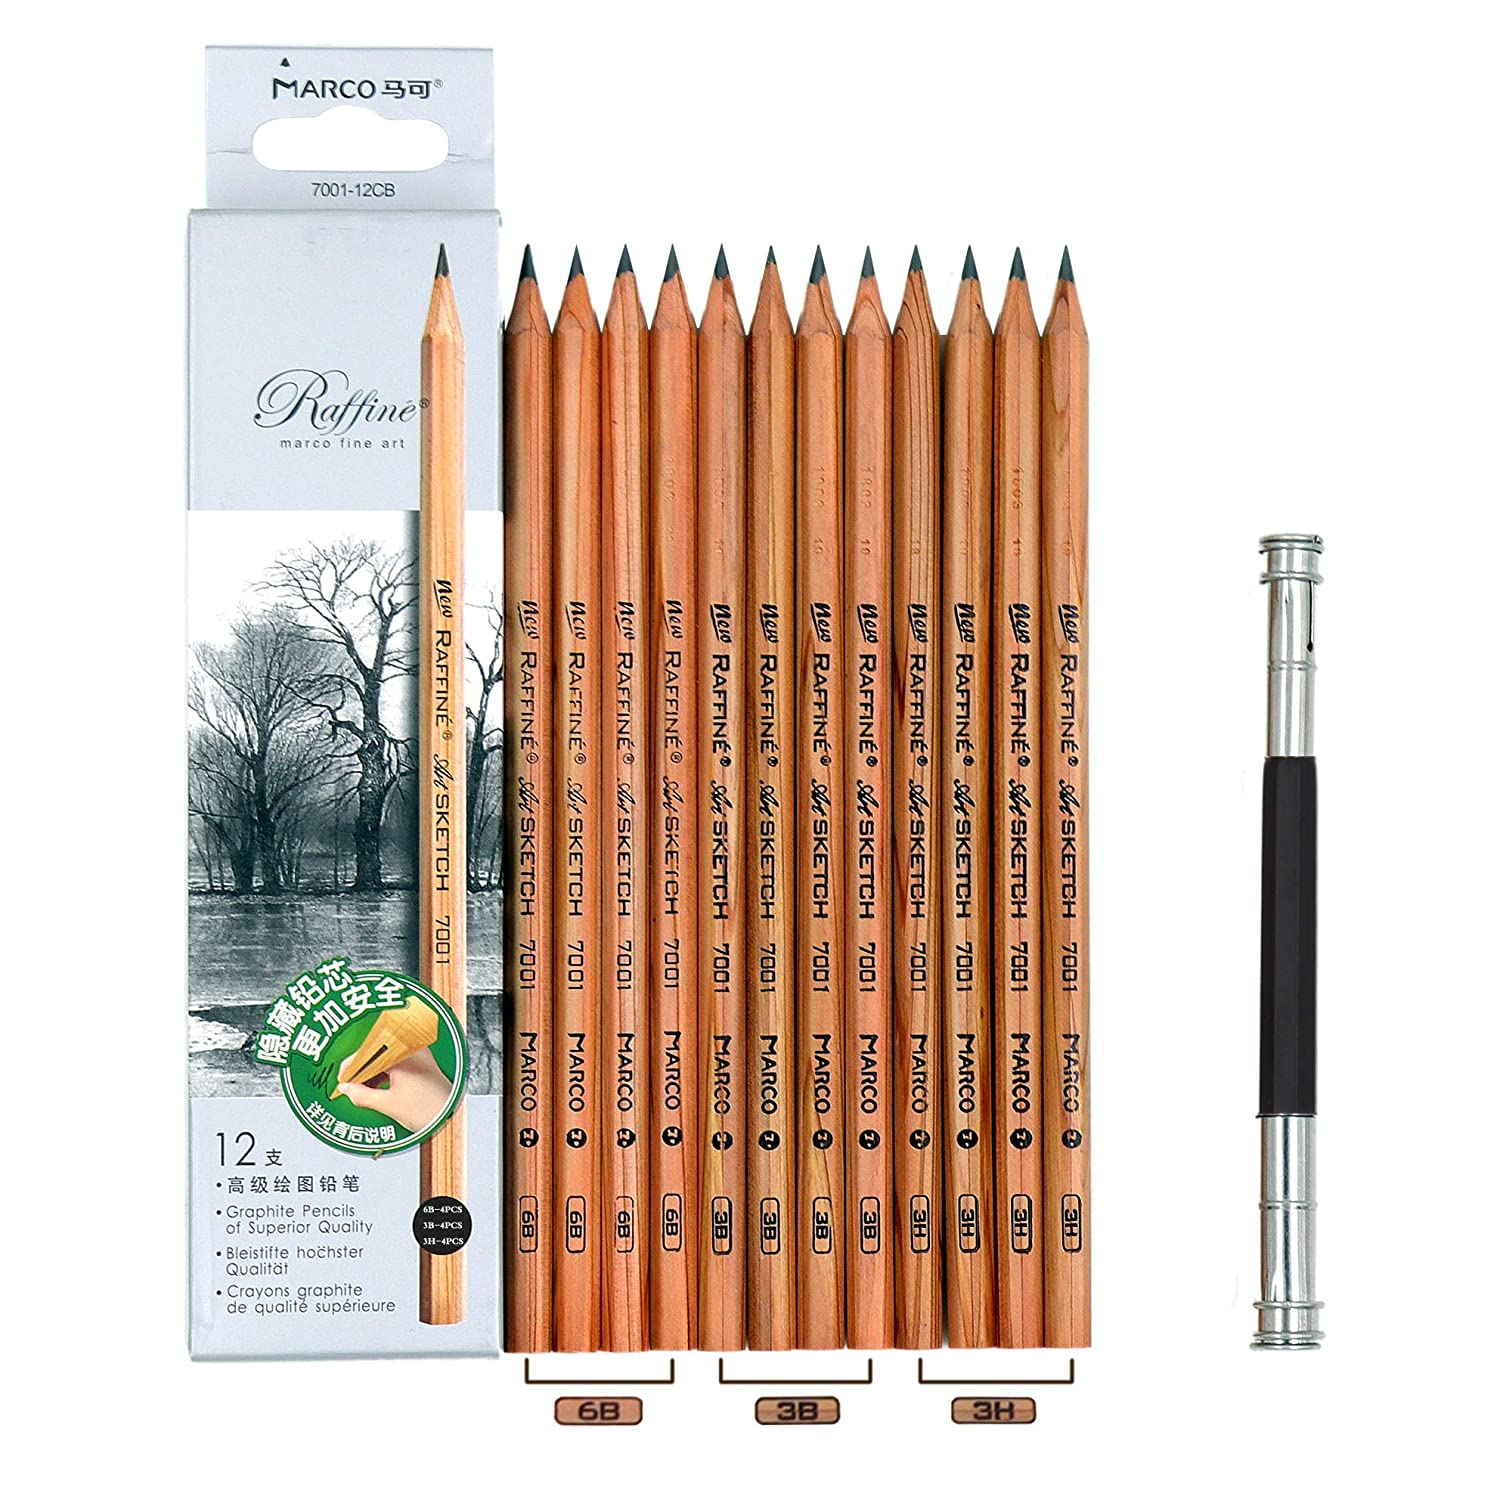 12pcs marco 7001 pencils 1pcs pencil extender 4pcs 3h drawing pencils 4pcs 3b sketching pencils 4pcs 6b art pencils 1pcs stainless steel pencil